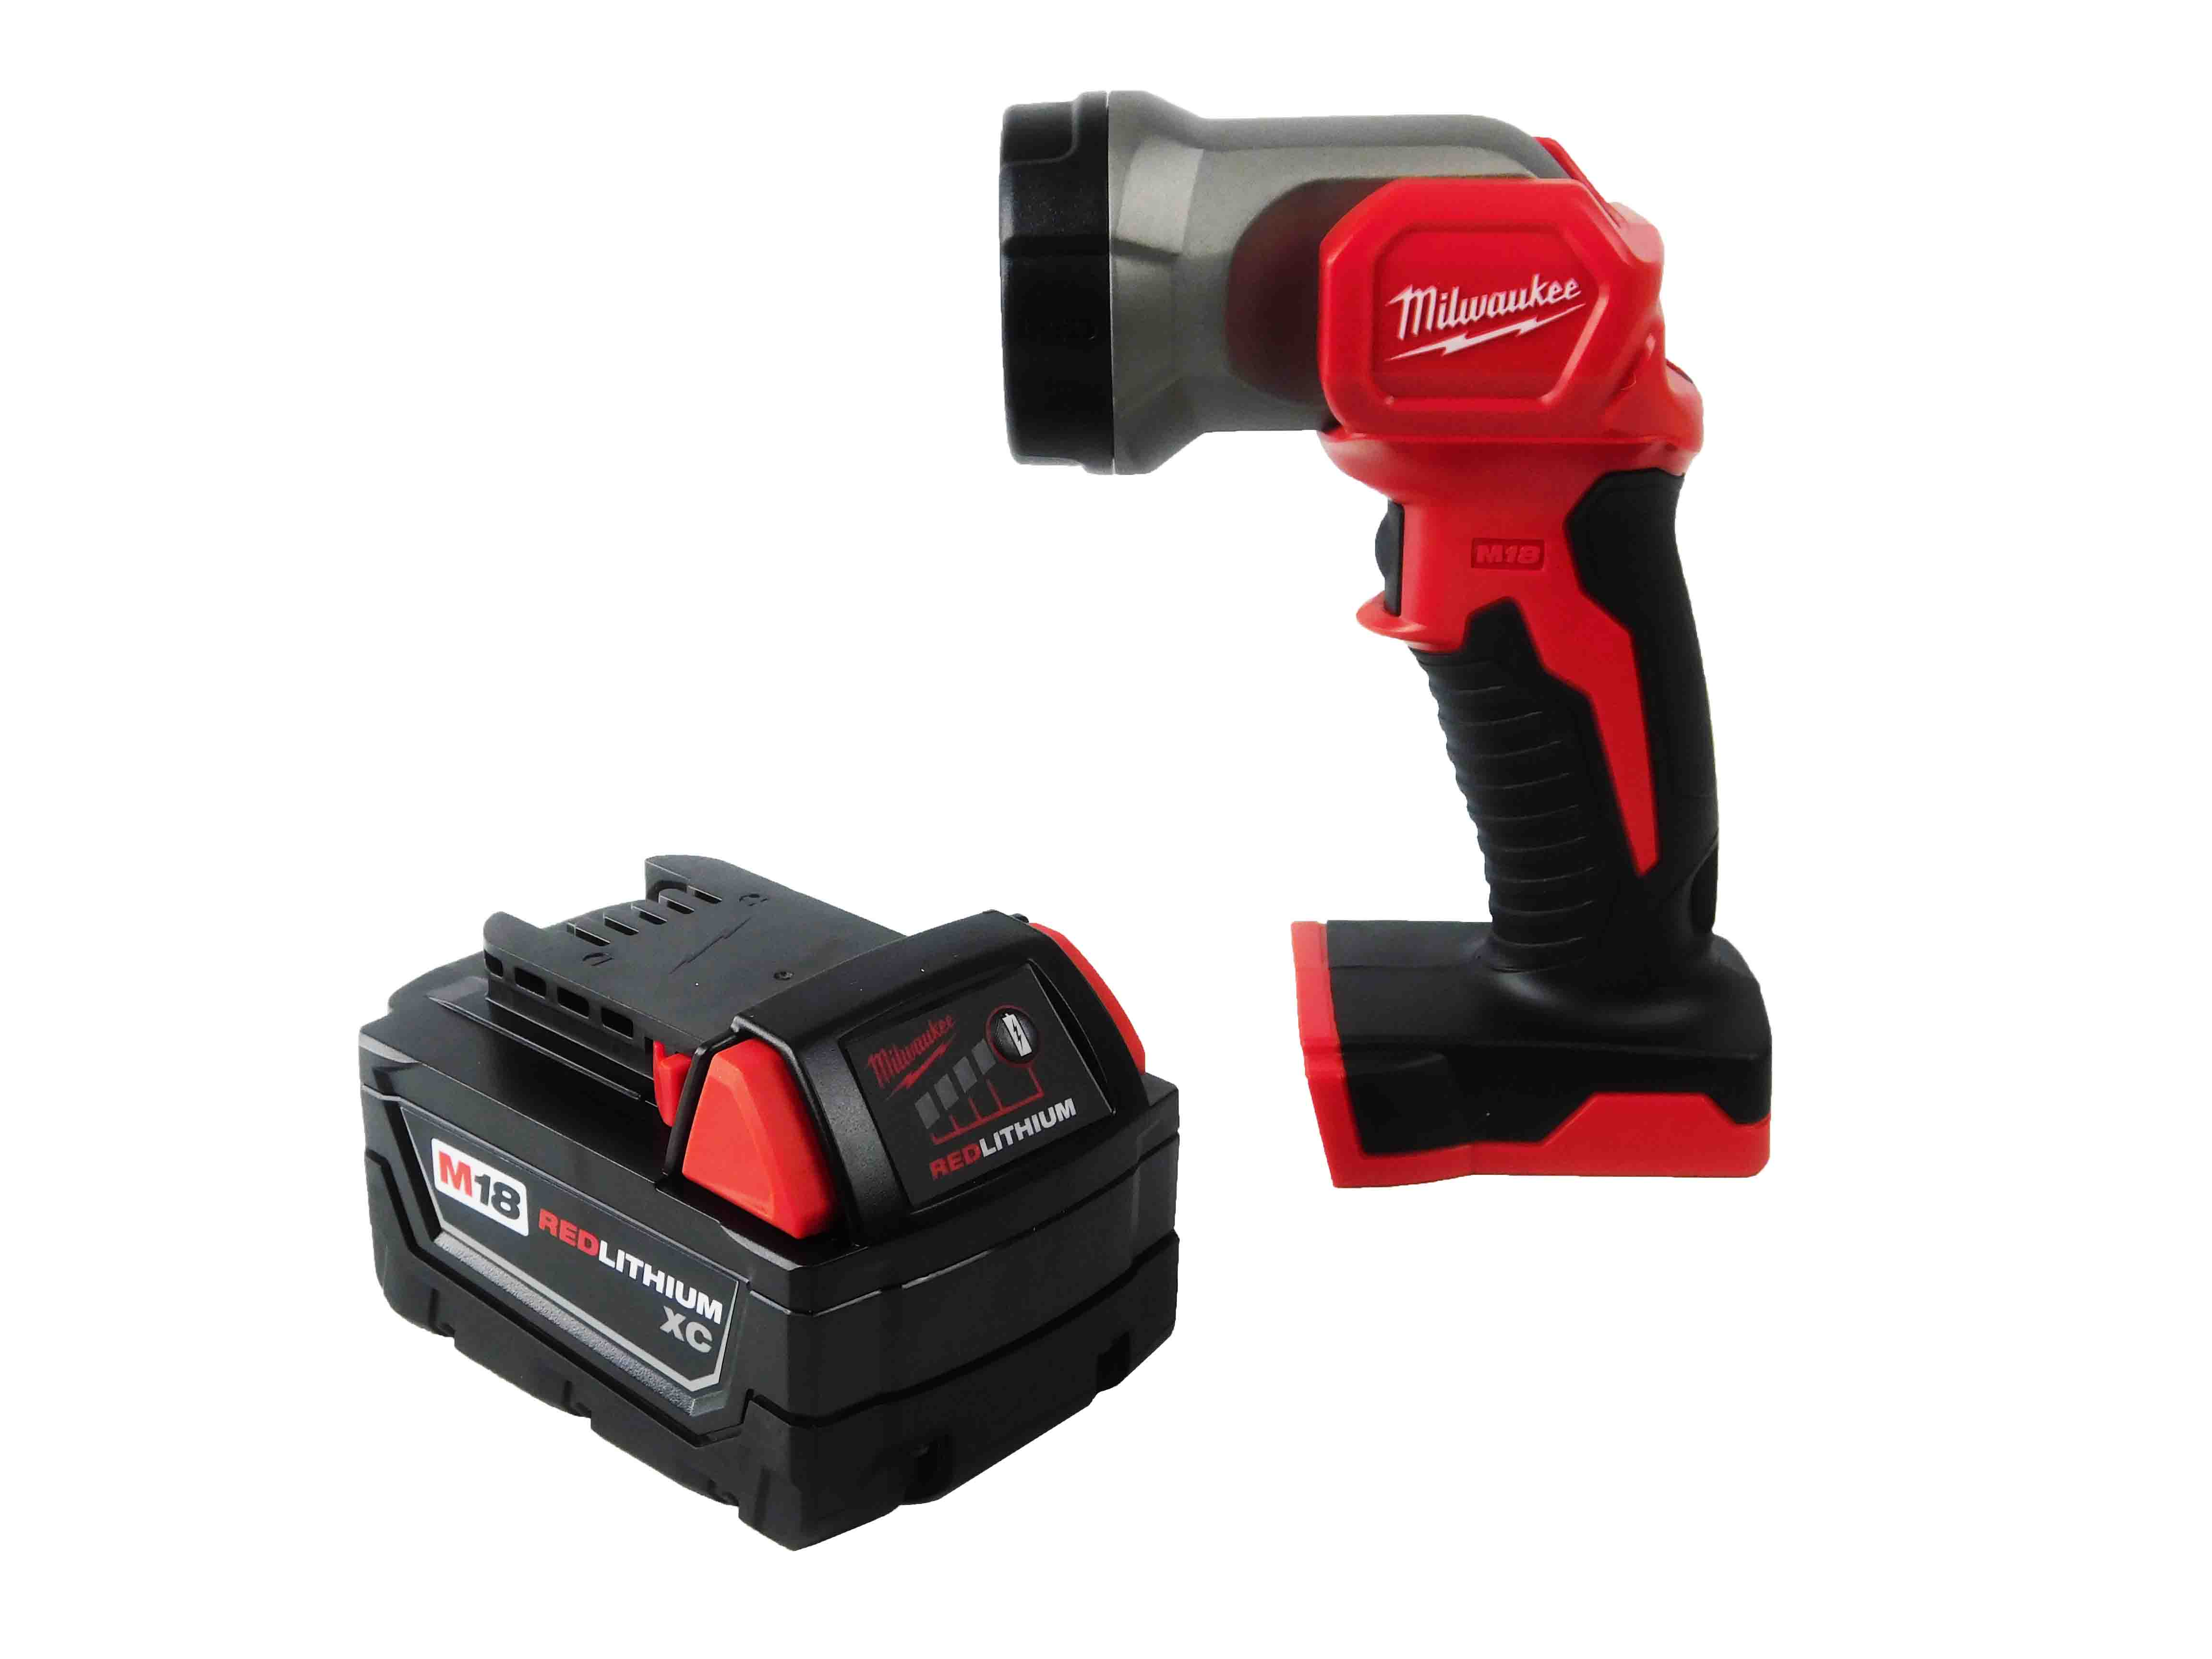 Milwaukee M18 2735-20 LED Work Light with 48-11-1828 3 Ah XC Lithium-Ion  Battery